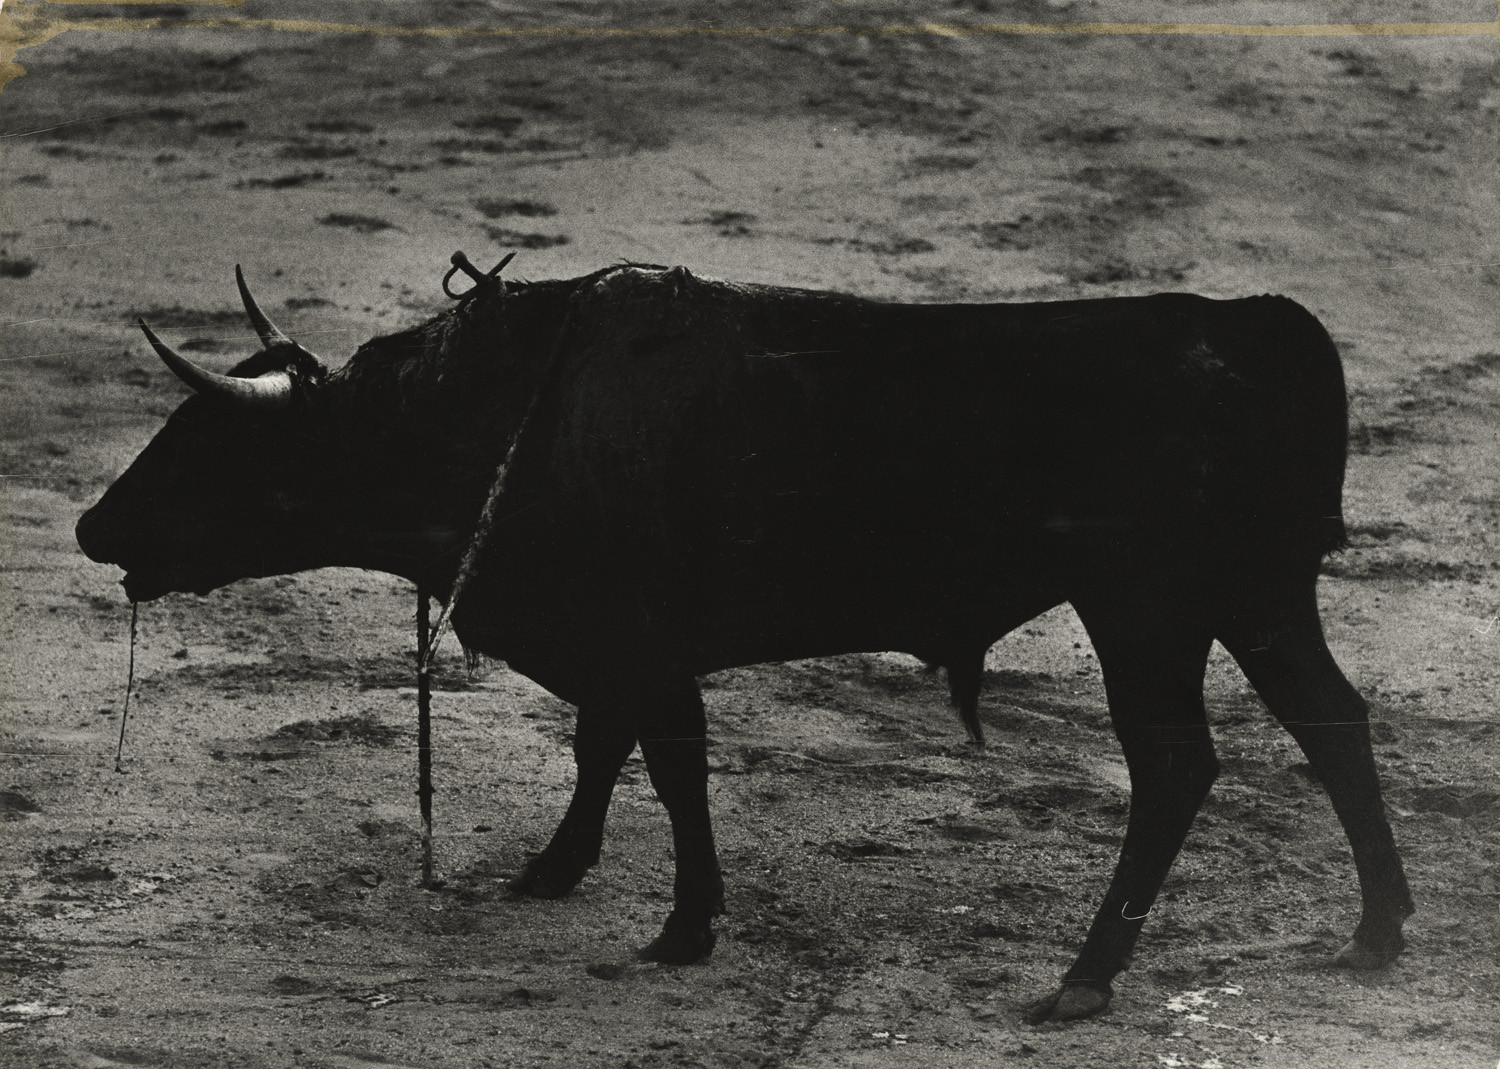 Christer Strömholm, Untitled, 1963